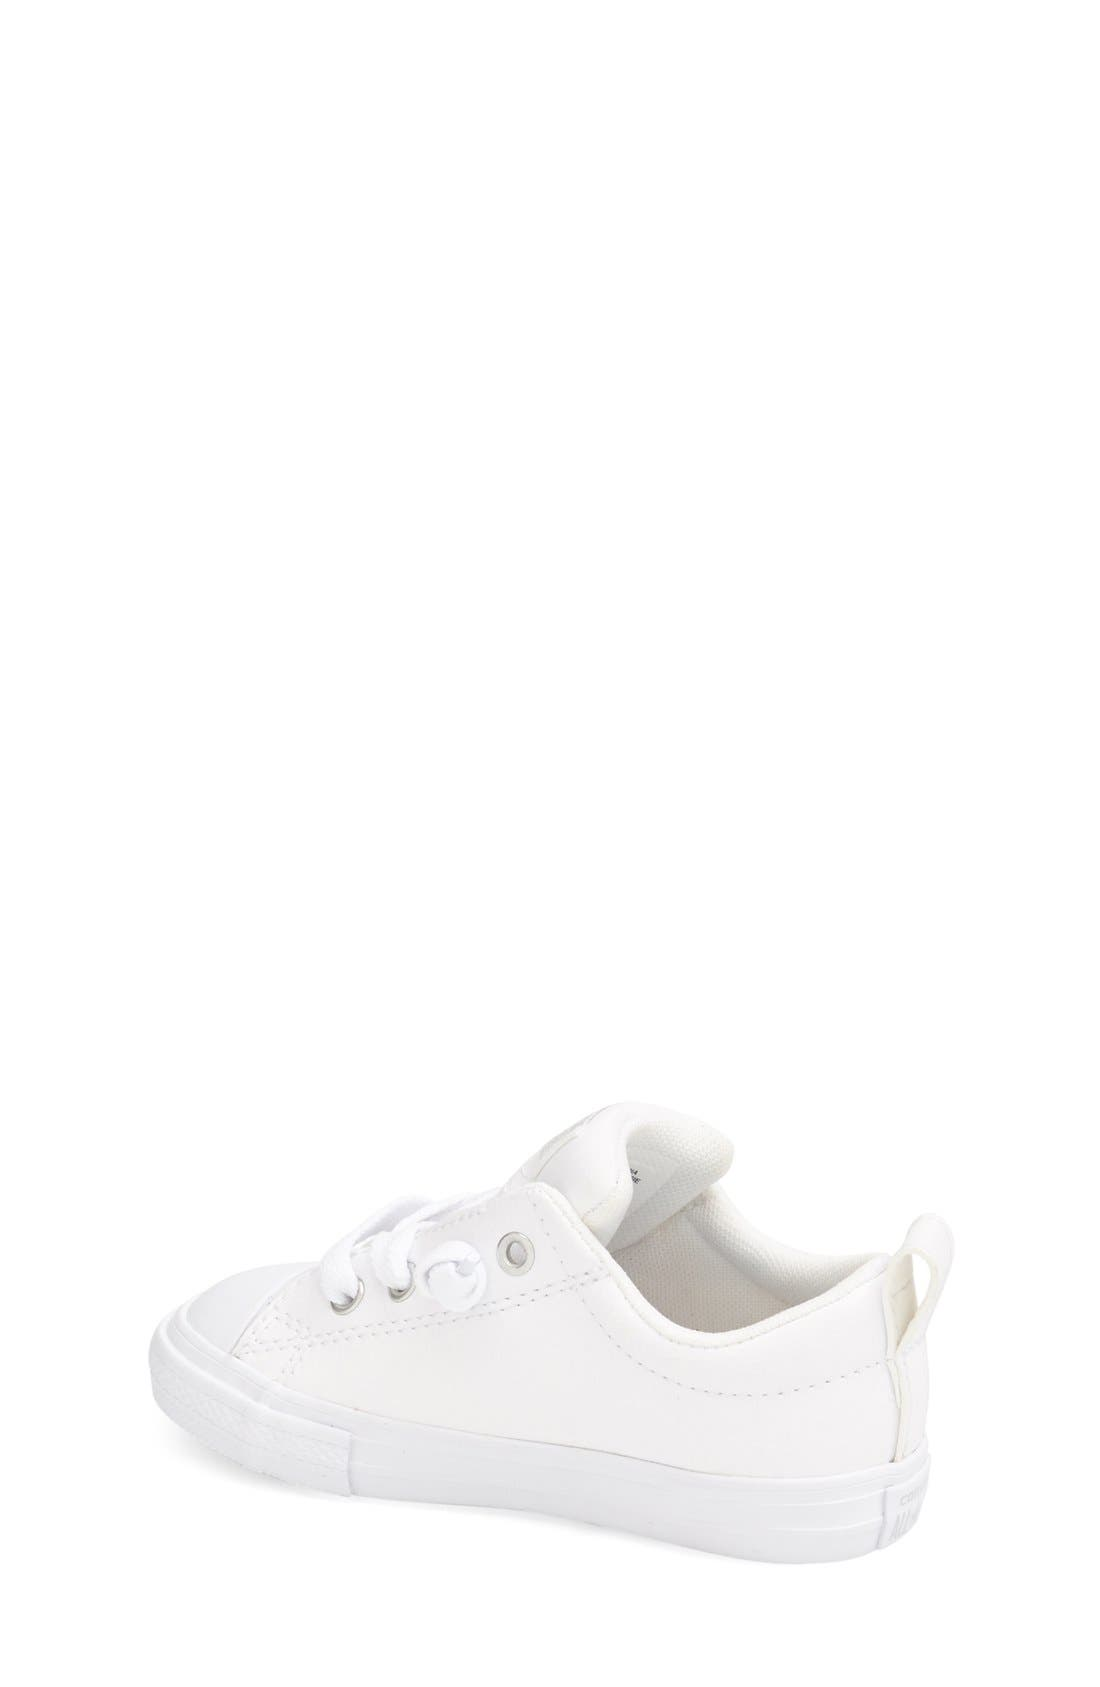 Chuck Taylor<sup>®</sup> All Star<sup>®</sup> 'Ox' Sneaker,                             Alternate thumbnail 2, color,                             White